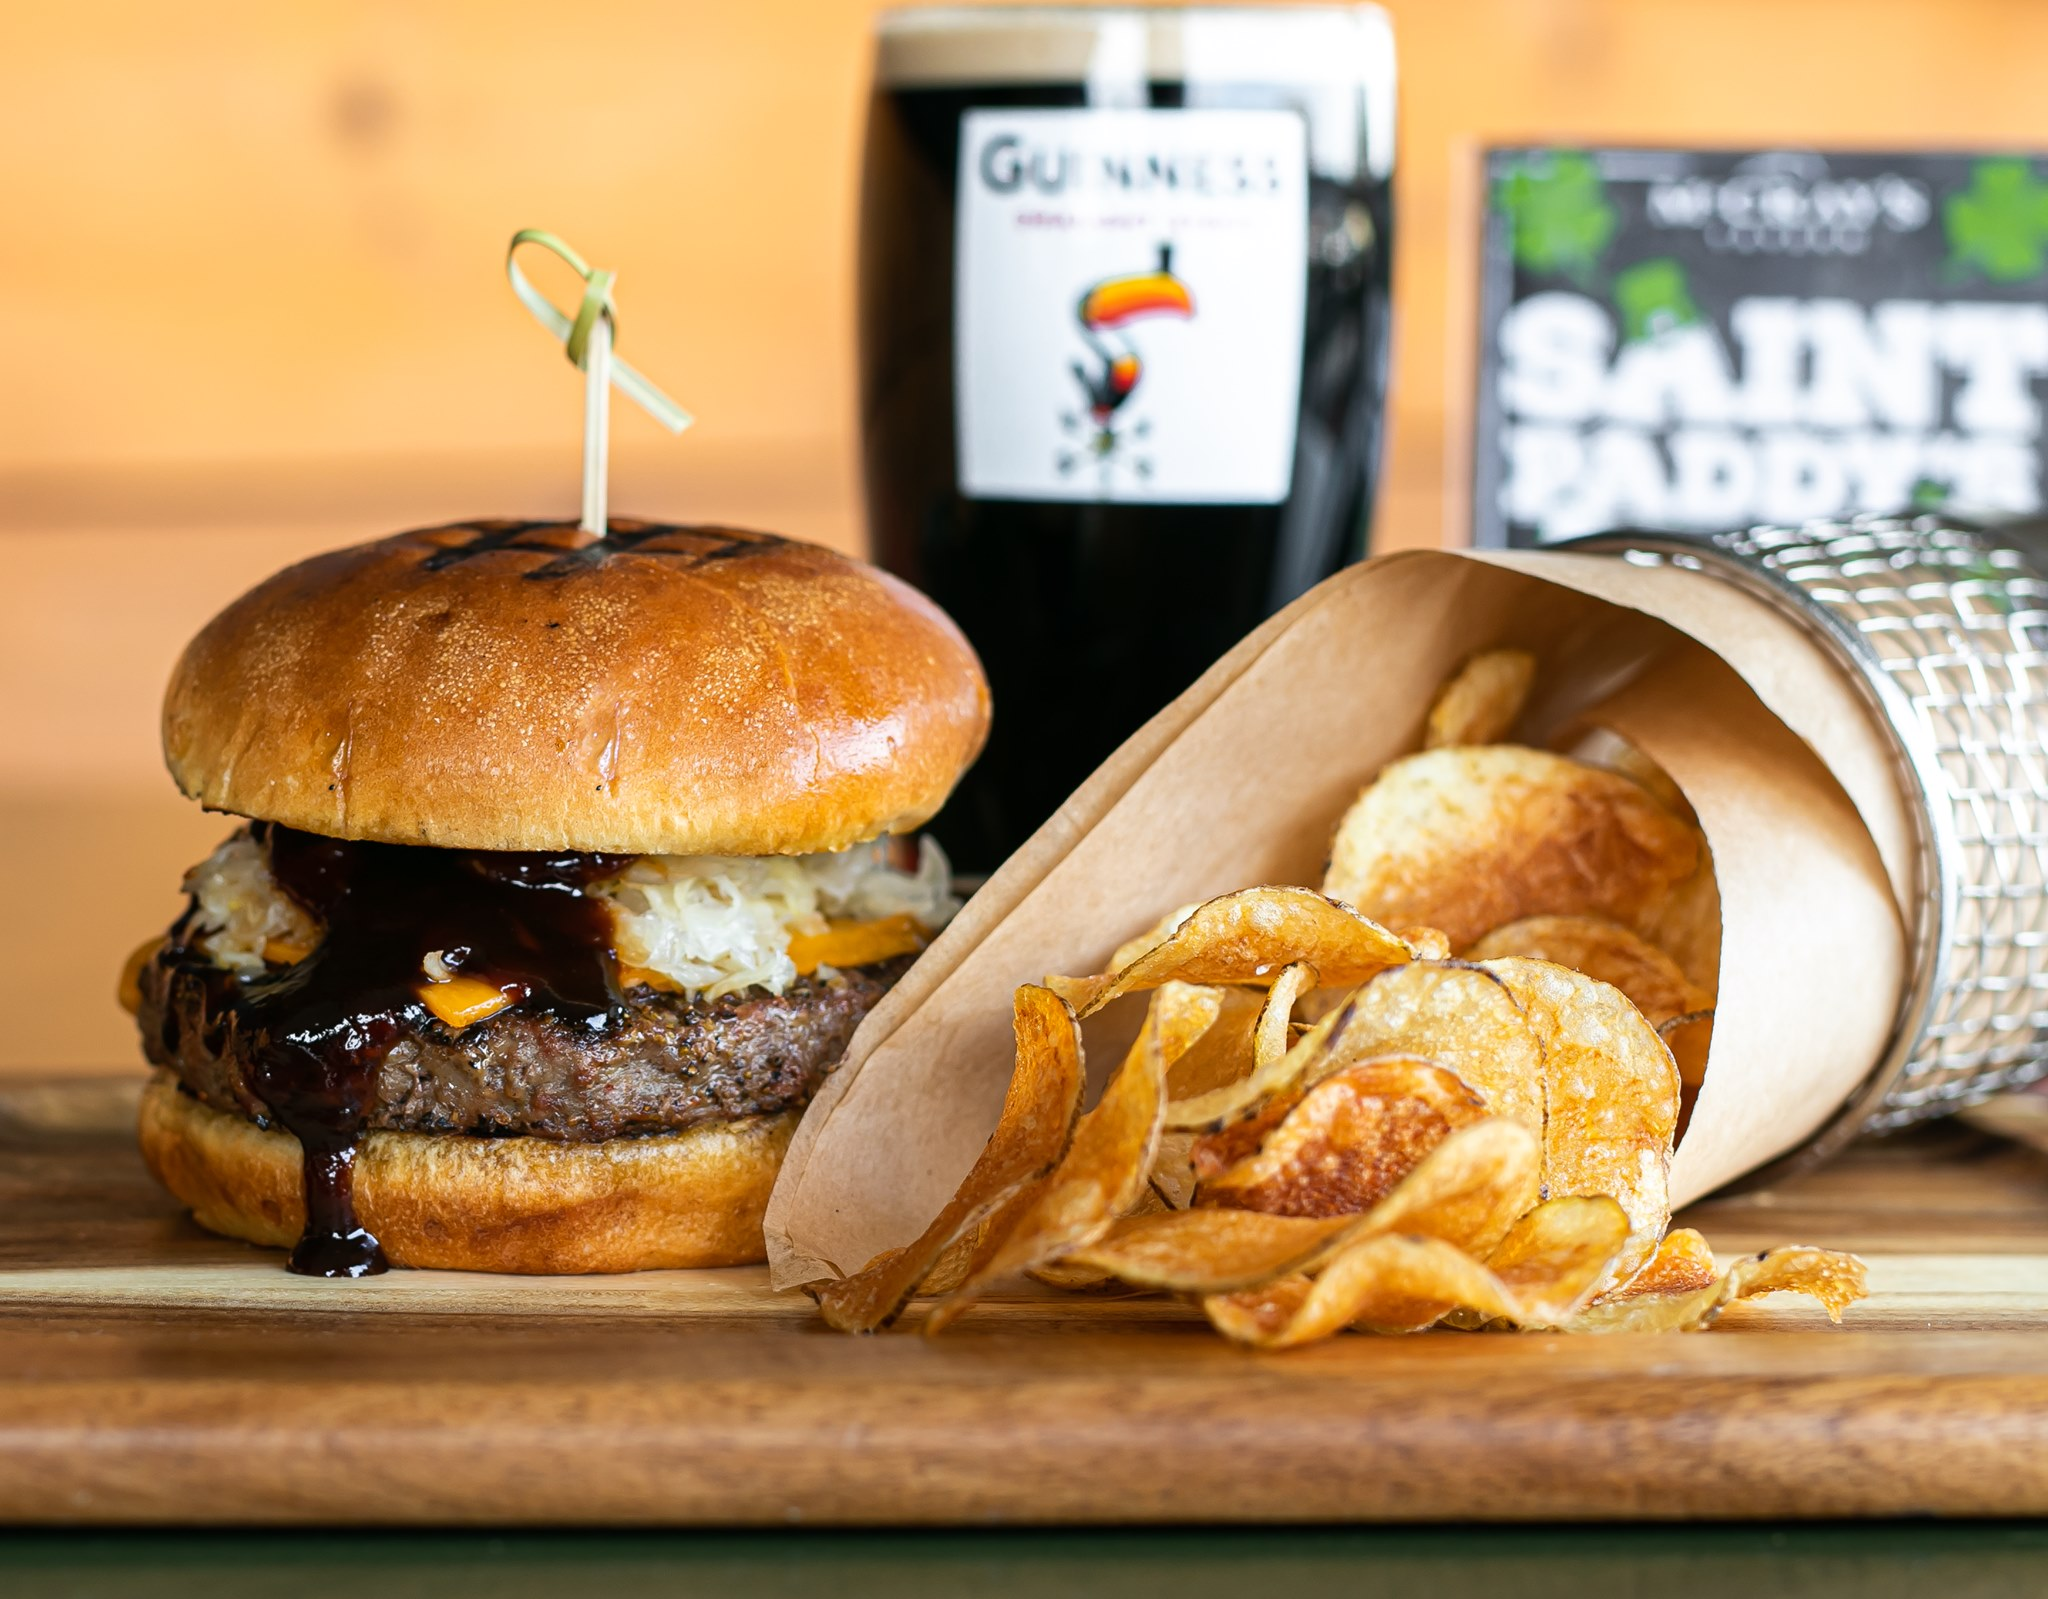 It's National Hamburger Day! Find the Best Hamburgers in Midtown at McCrays